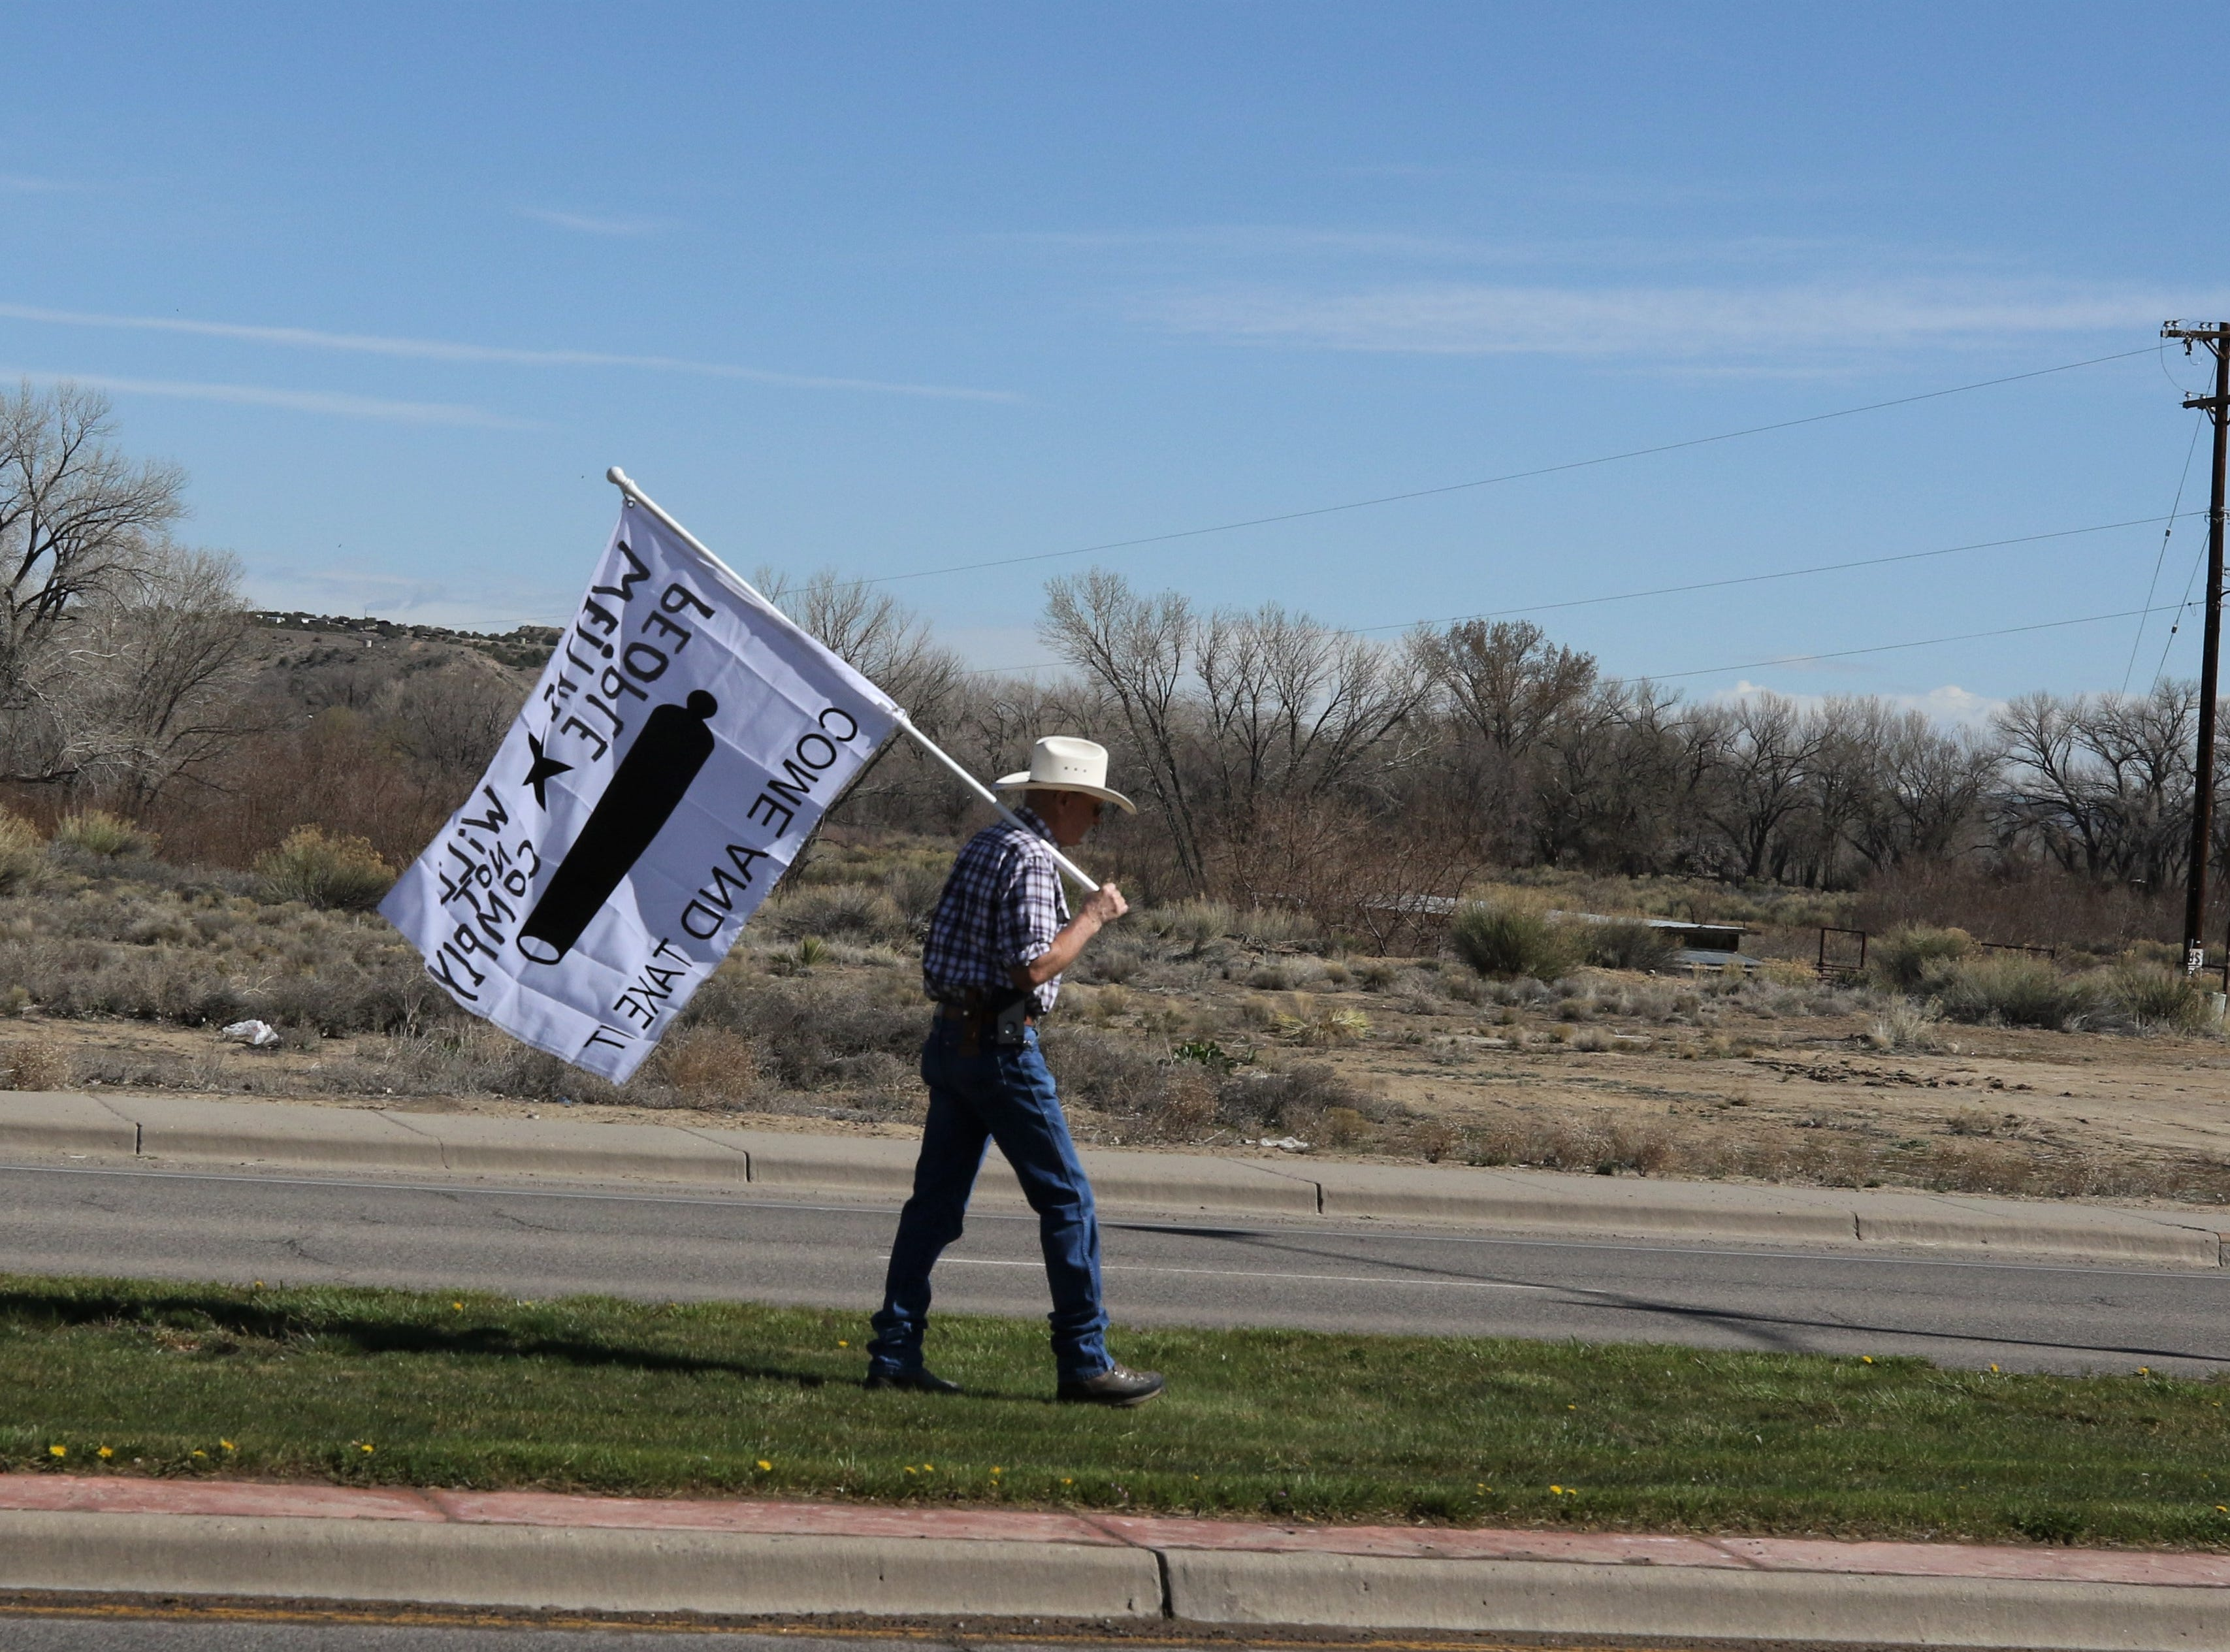 Greg Graves carries a banner in the median of West Aztec Boulevard, Saturday, April 6, 2019, during a Second Amendment rally in Aztec.